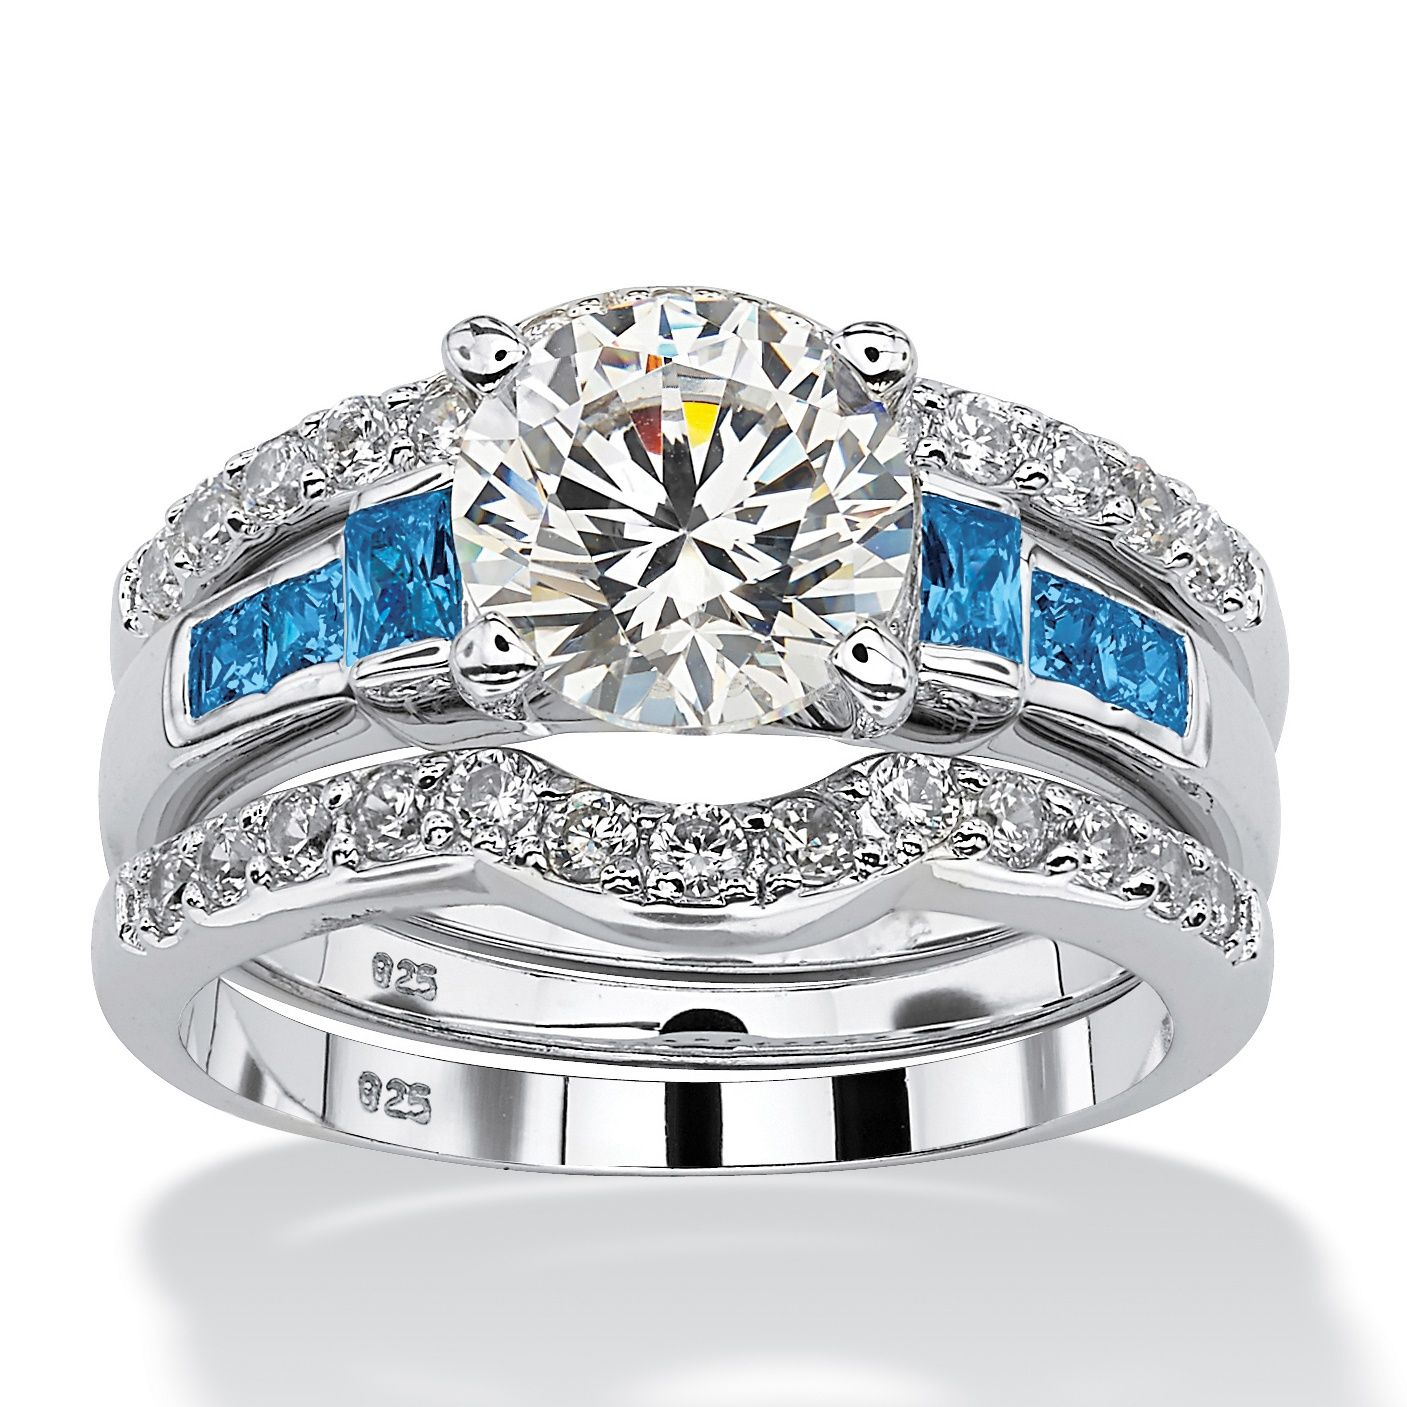 This dazzling three piece cubic zirconia bridal set features an